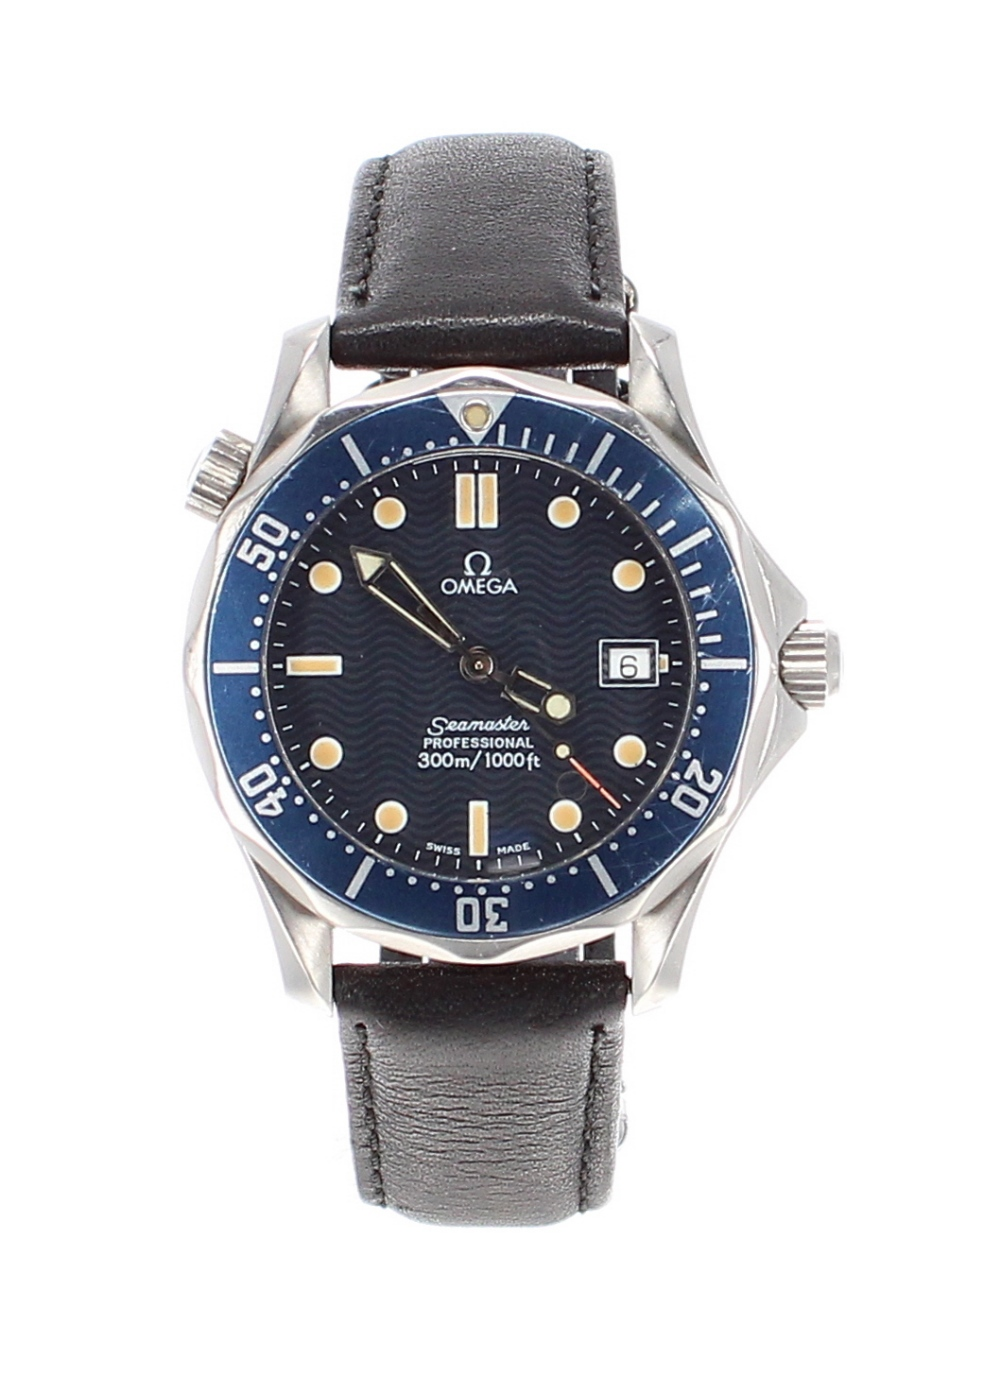 Lot 25 - Omega Seamaster Professional 300m mid size stainless steel gentleman's wristwatch, ref. 196 1502 /